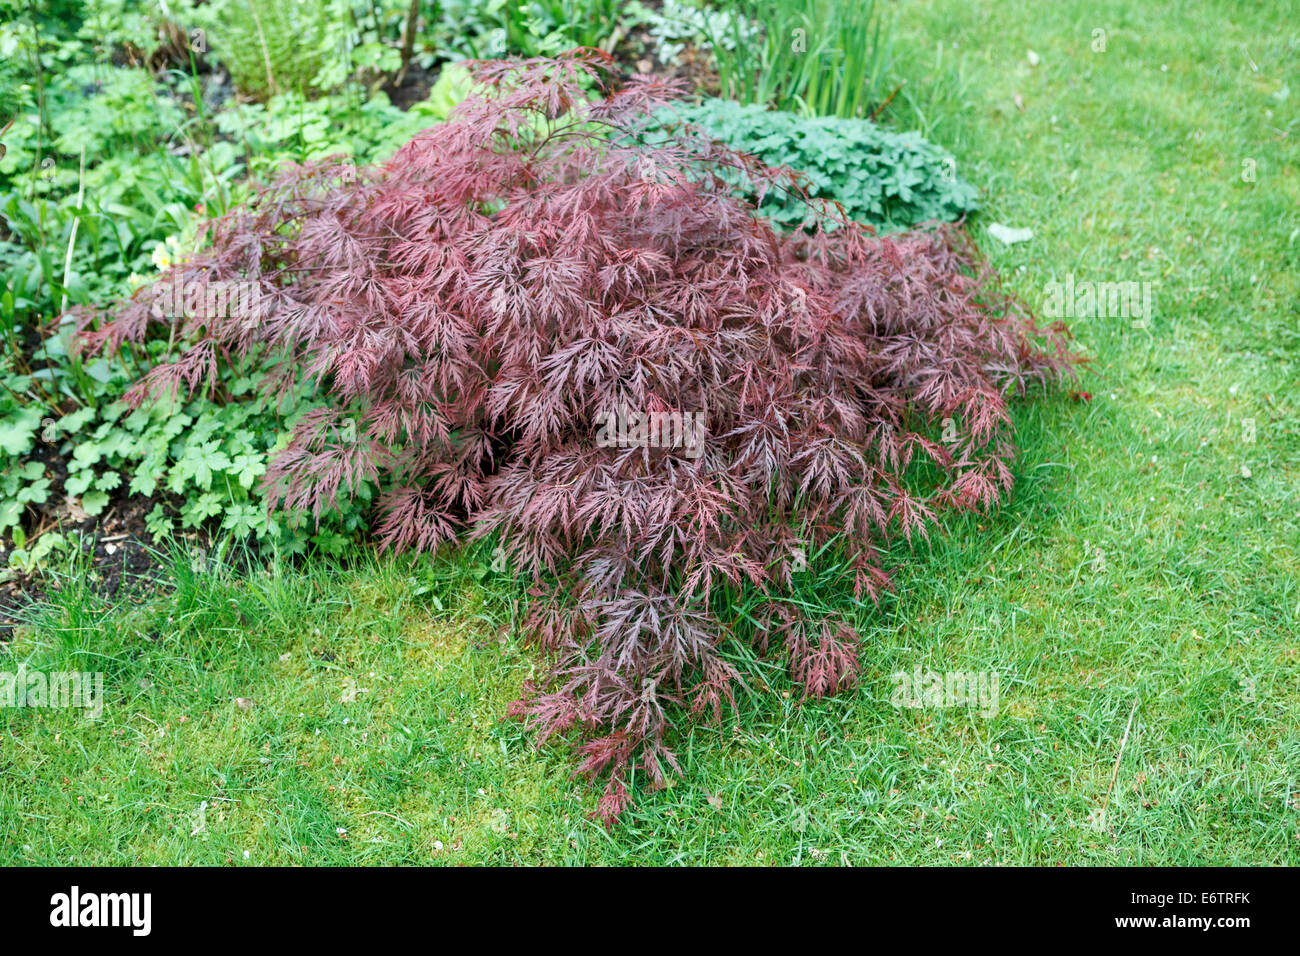 acer palmatum dissectum garnet japanese maple in spring stock photo 73074727 alamy. Black Bedroom Furniture Sets. Home Design Ideas